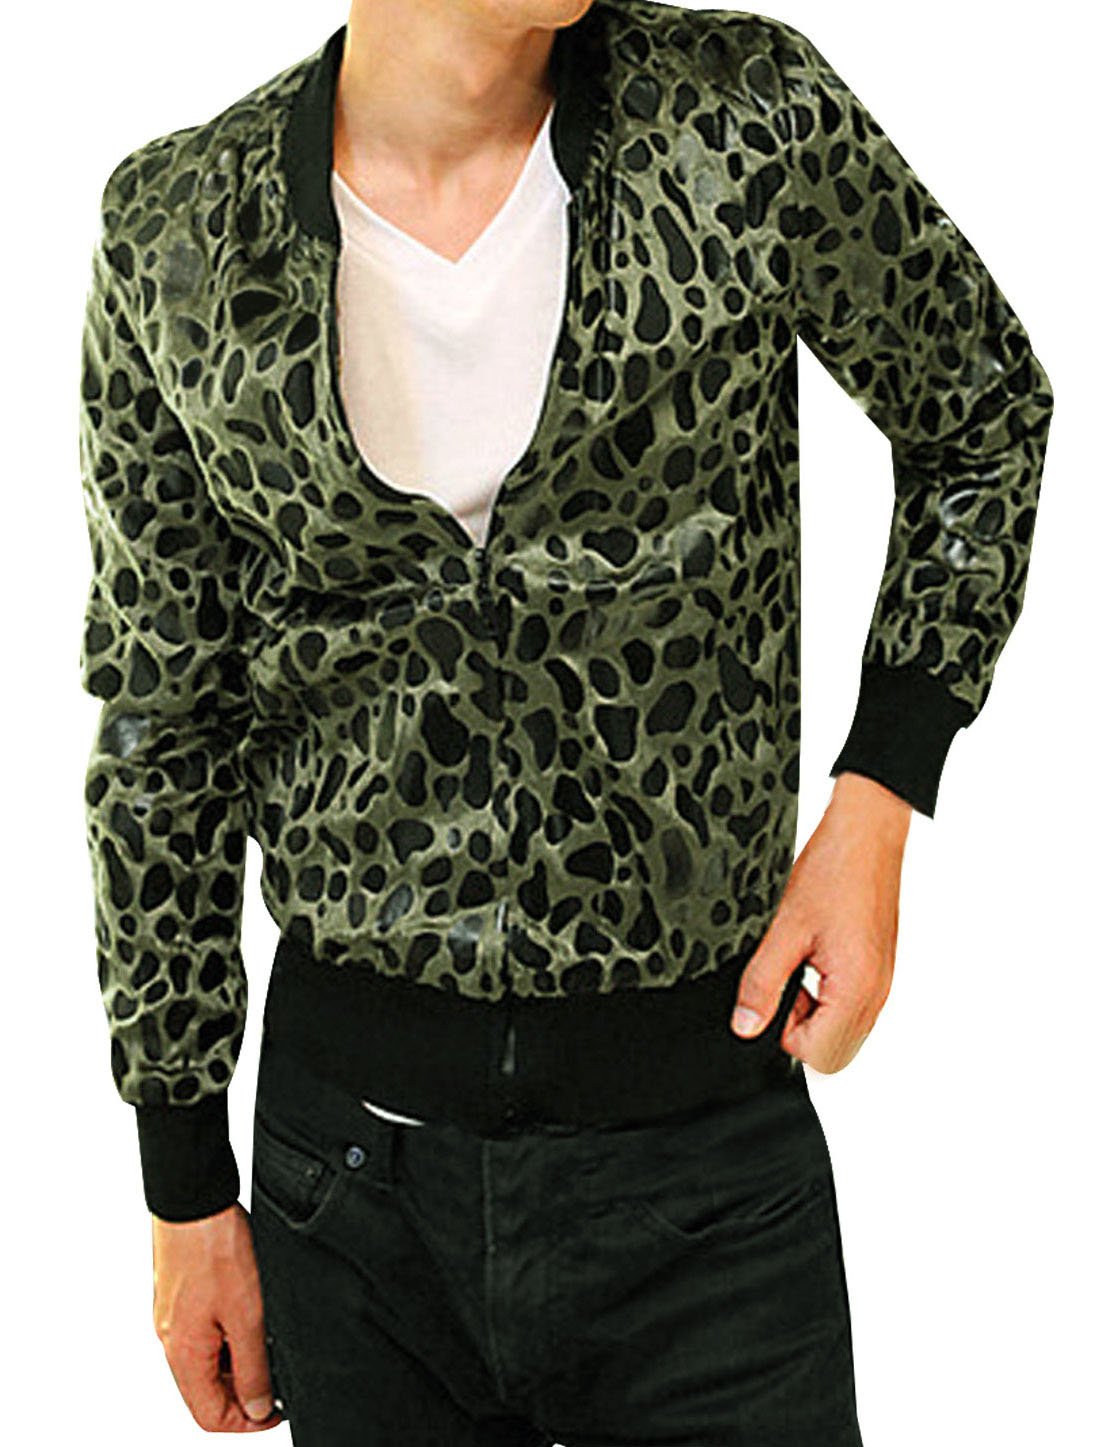 Mens Olive Green Black NEW Leopard Prints Slant Pockets Zipped Bomper Jacket S